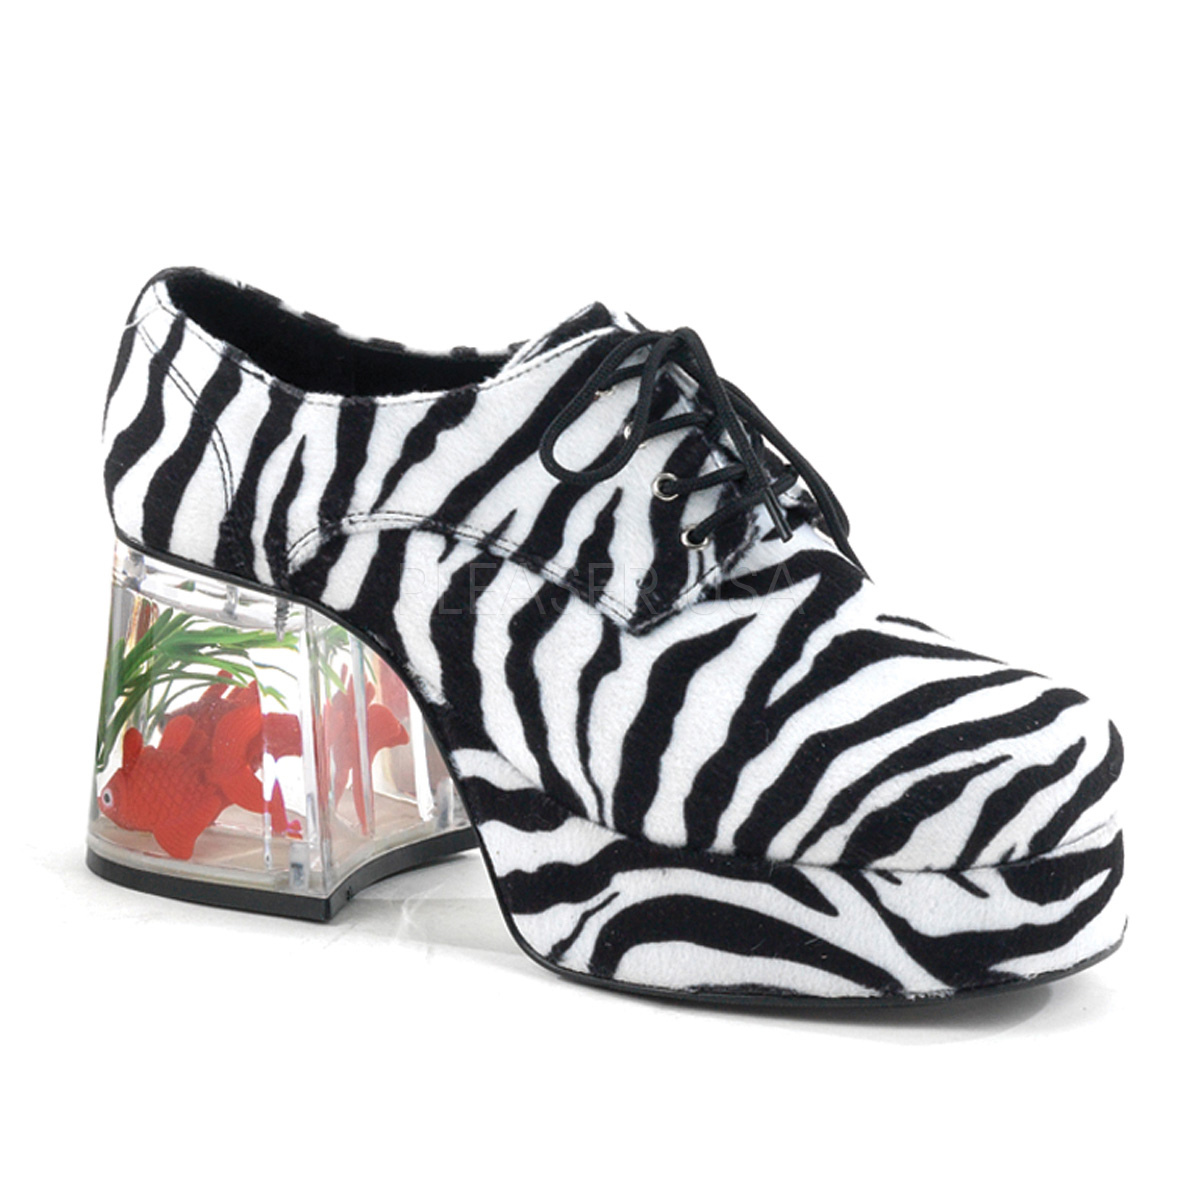 Funtasma PIMP-02 3 1/2inch Heel, 1 1/2inch PF #Men's Disco Platform w/Floating Fish◆取り寄せ